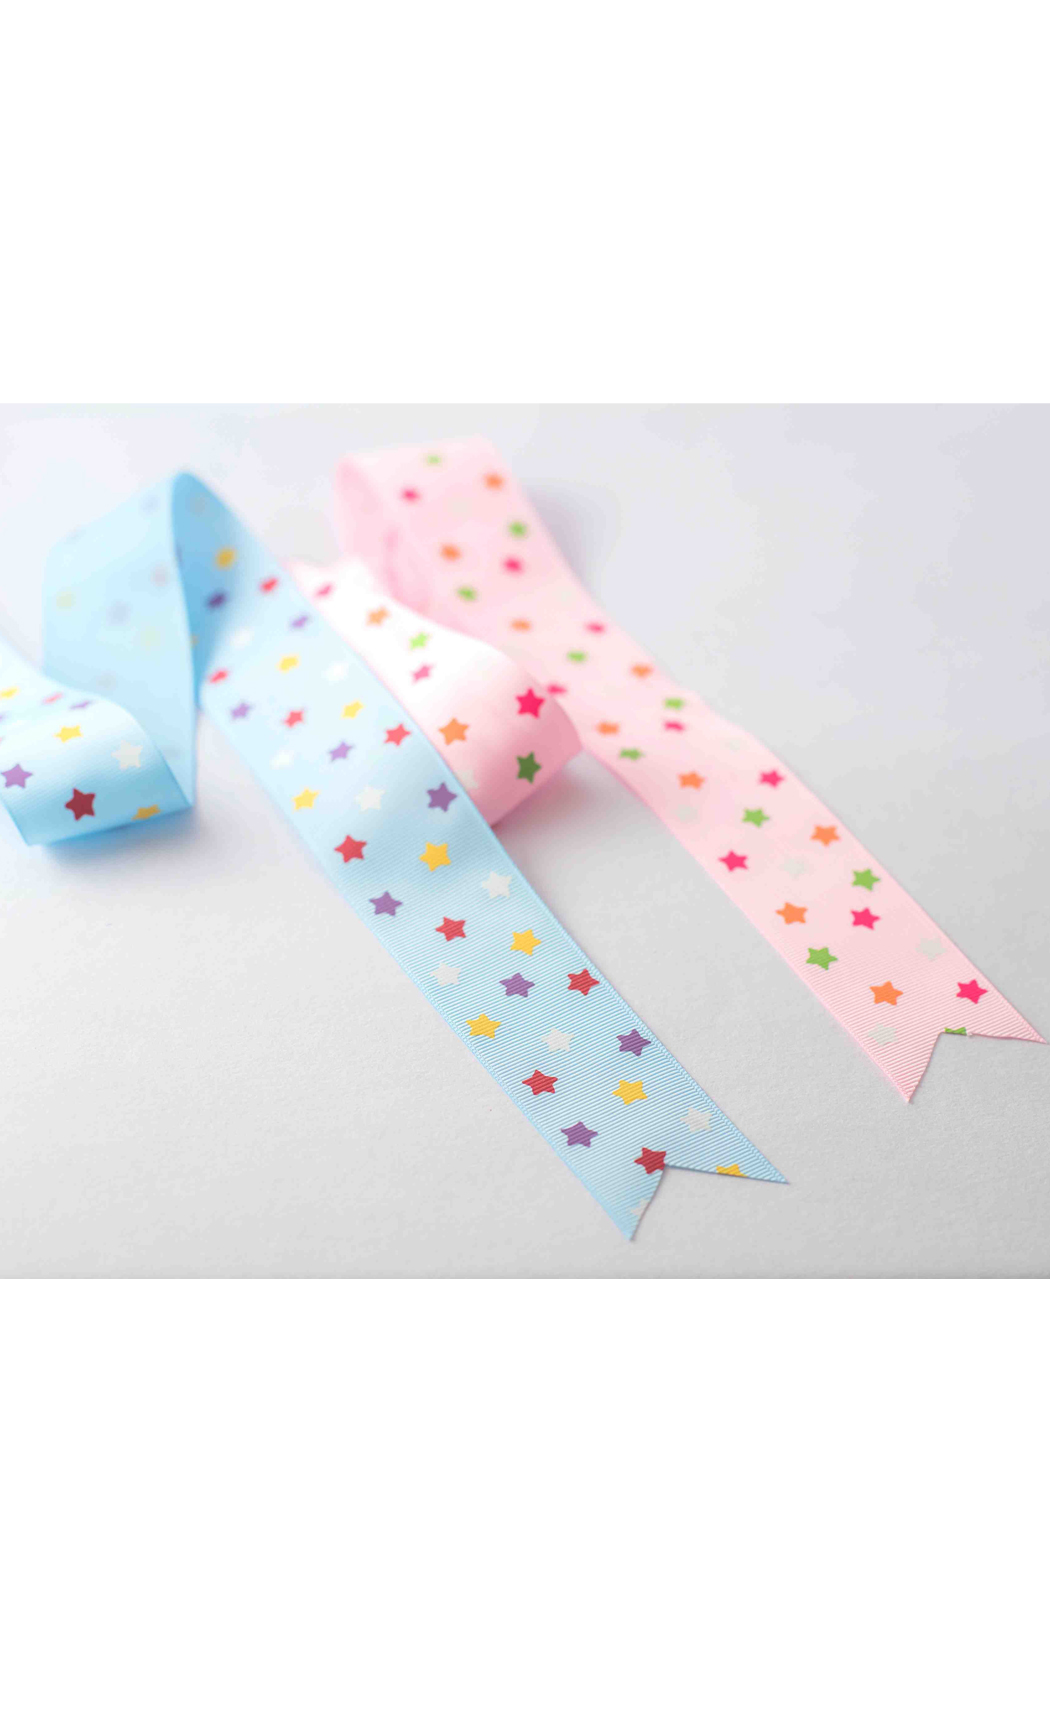 Pink Ribbon with Multicolored Stars - Buy Online